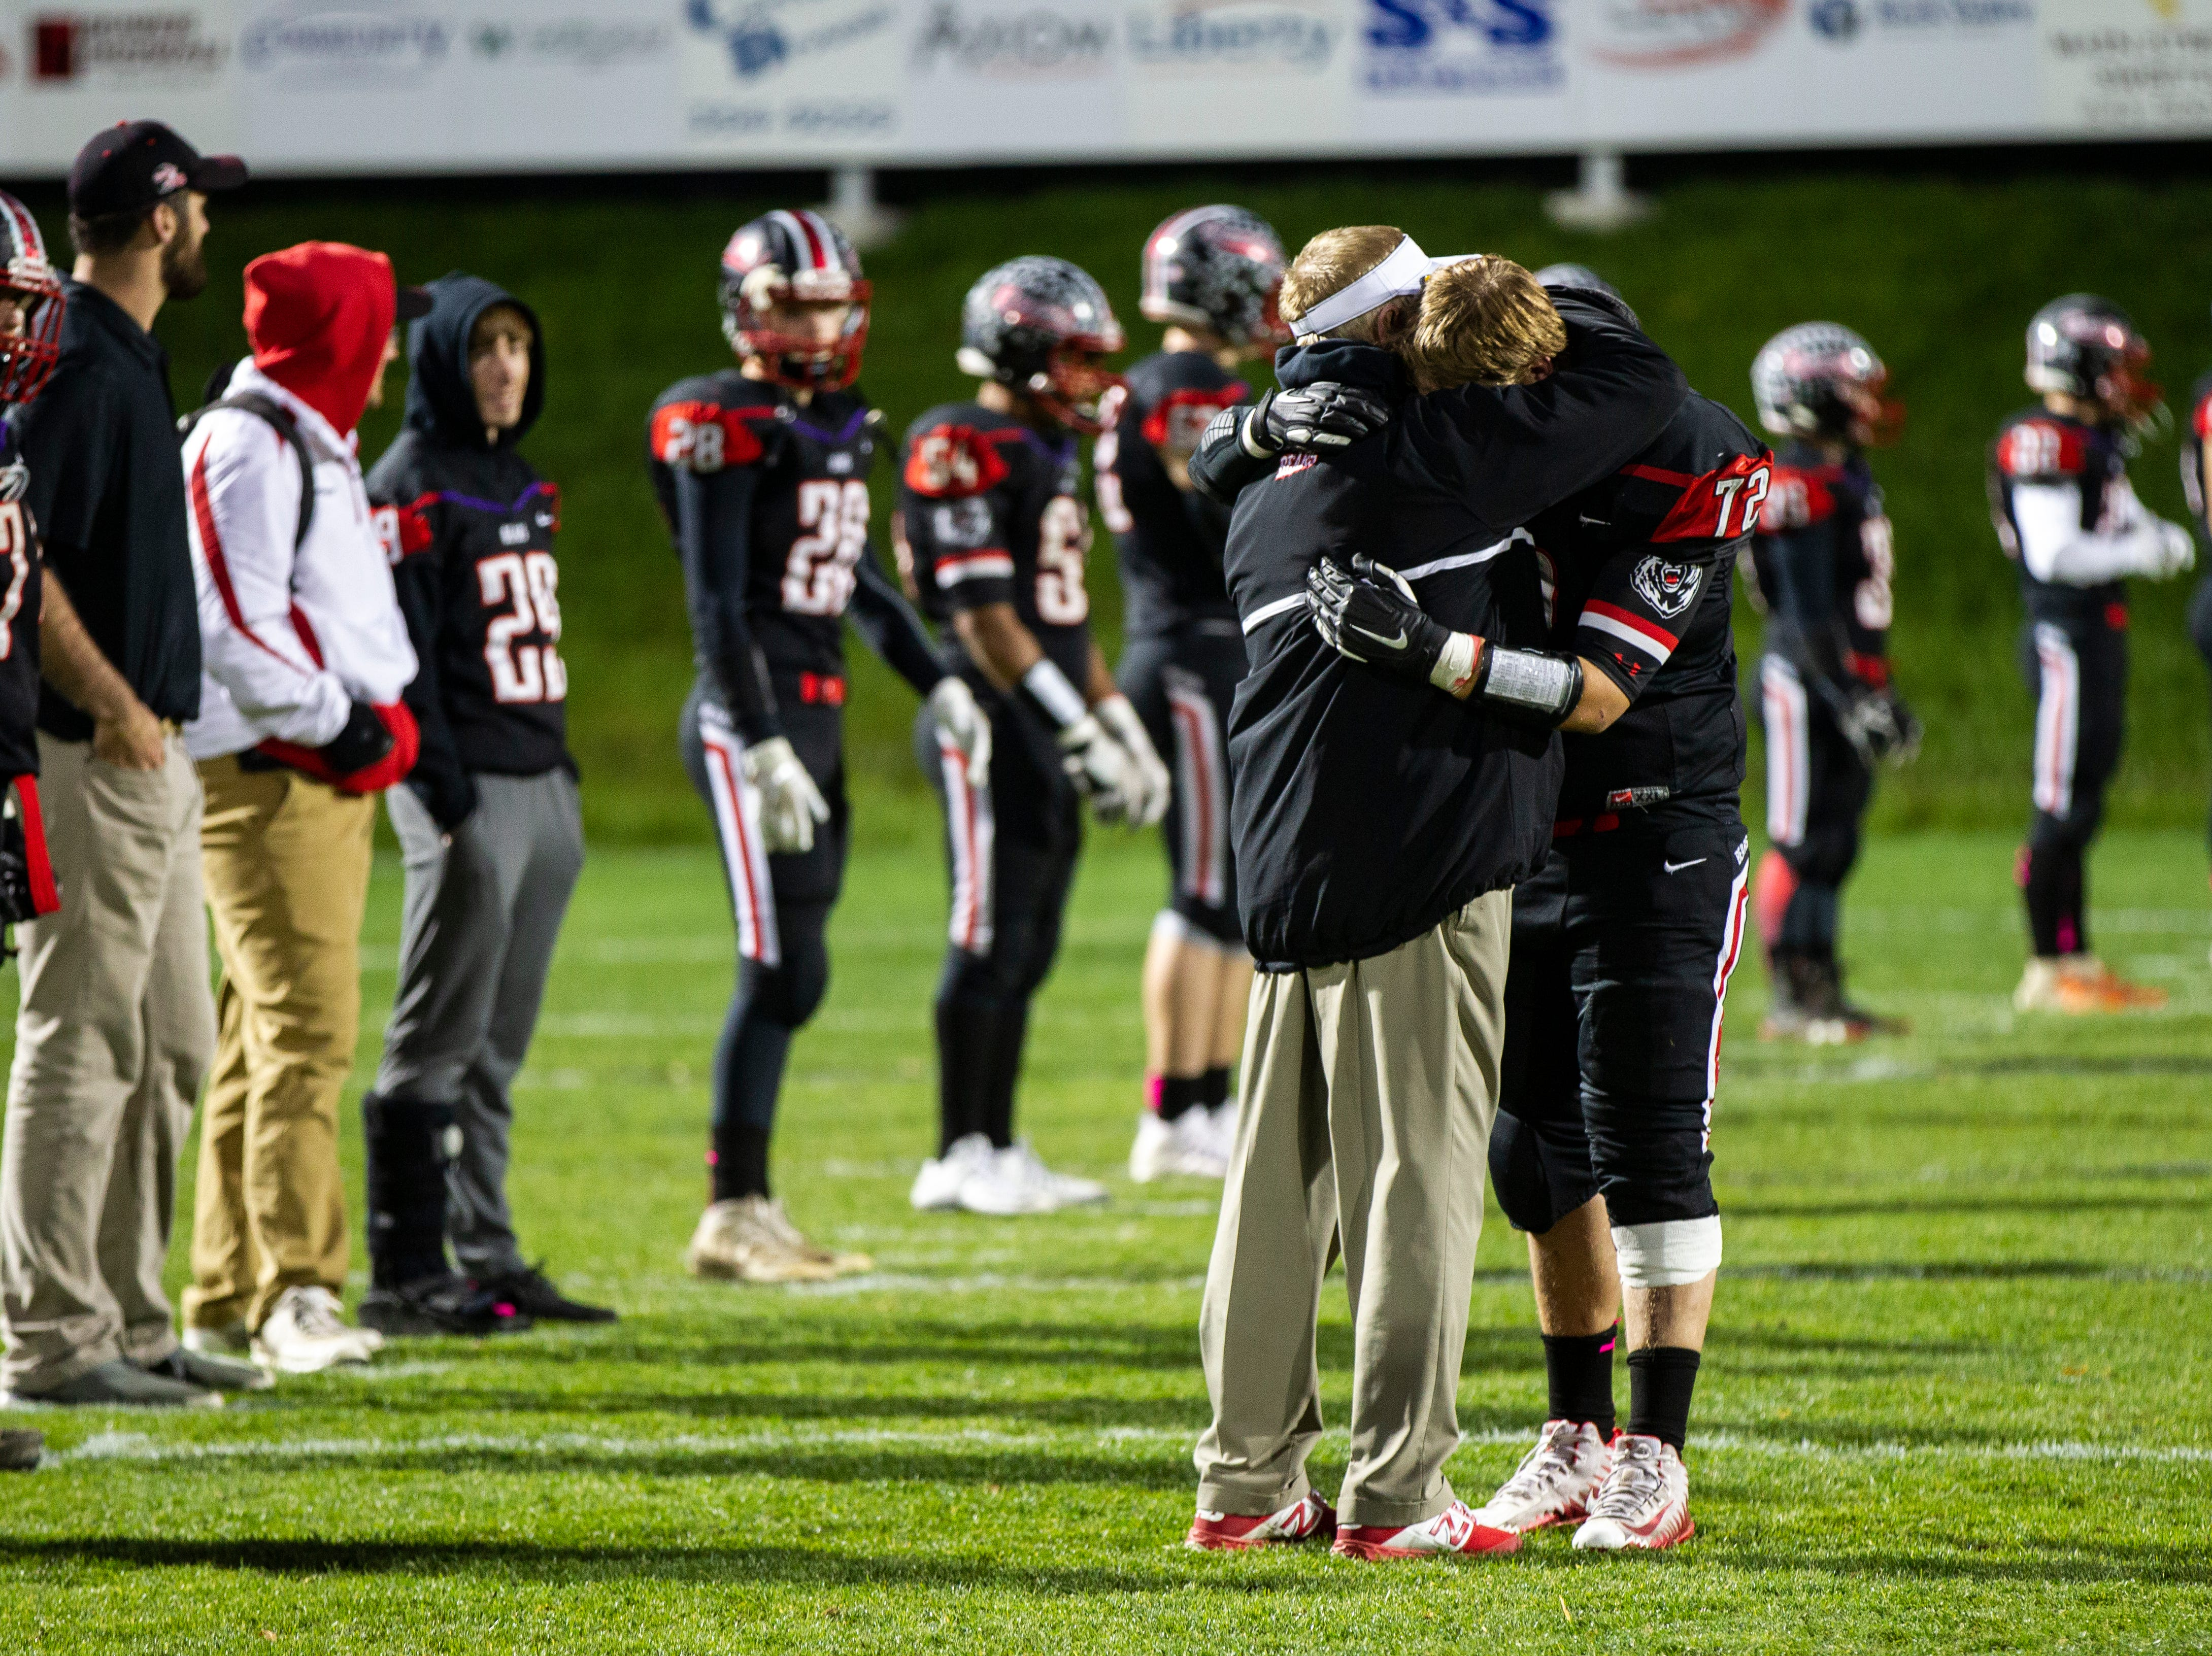 West Branch football head coach Butch Pedersen embraces senior lineman Drake Bloem (72) before a Class A varsity football game on Friday, Oct. 12, 2018, at the Little Rose Bowl in West Branch, Iowa.